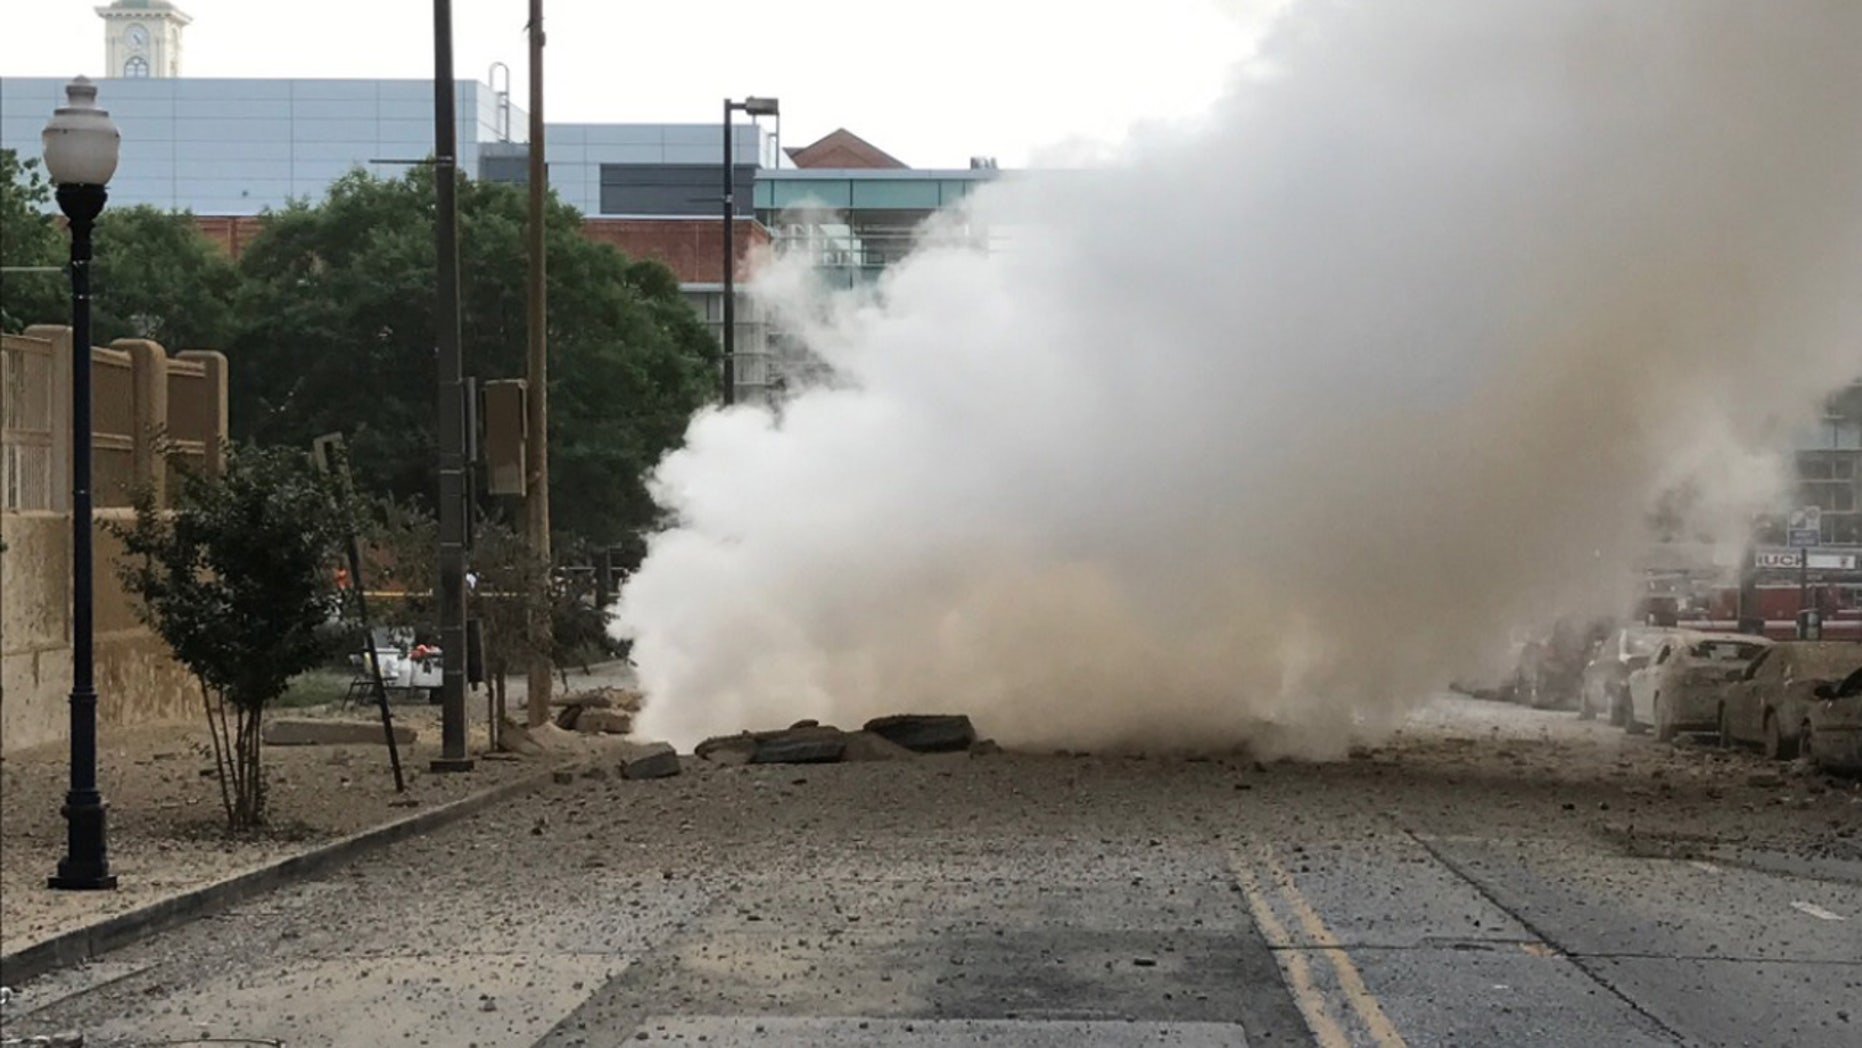 The scene after a steam pipe explosion in Baltimore.